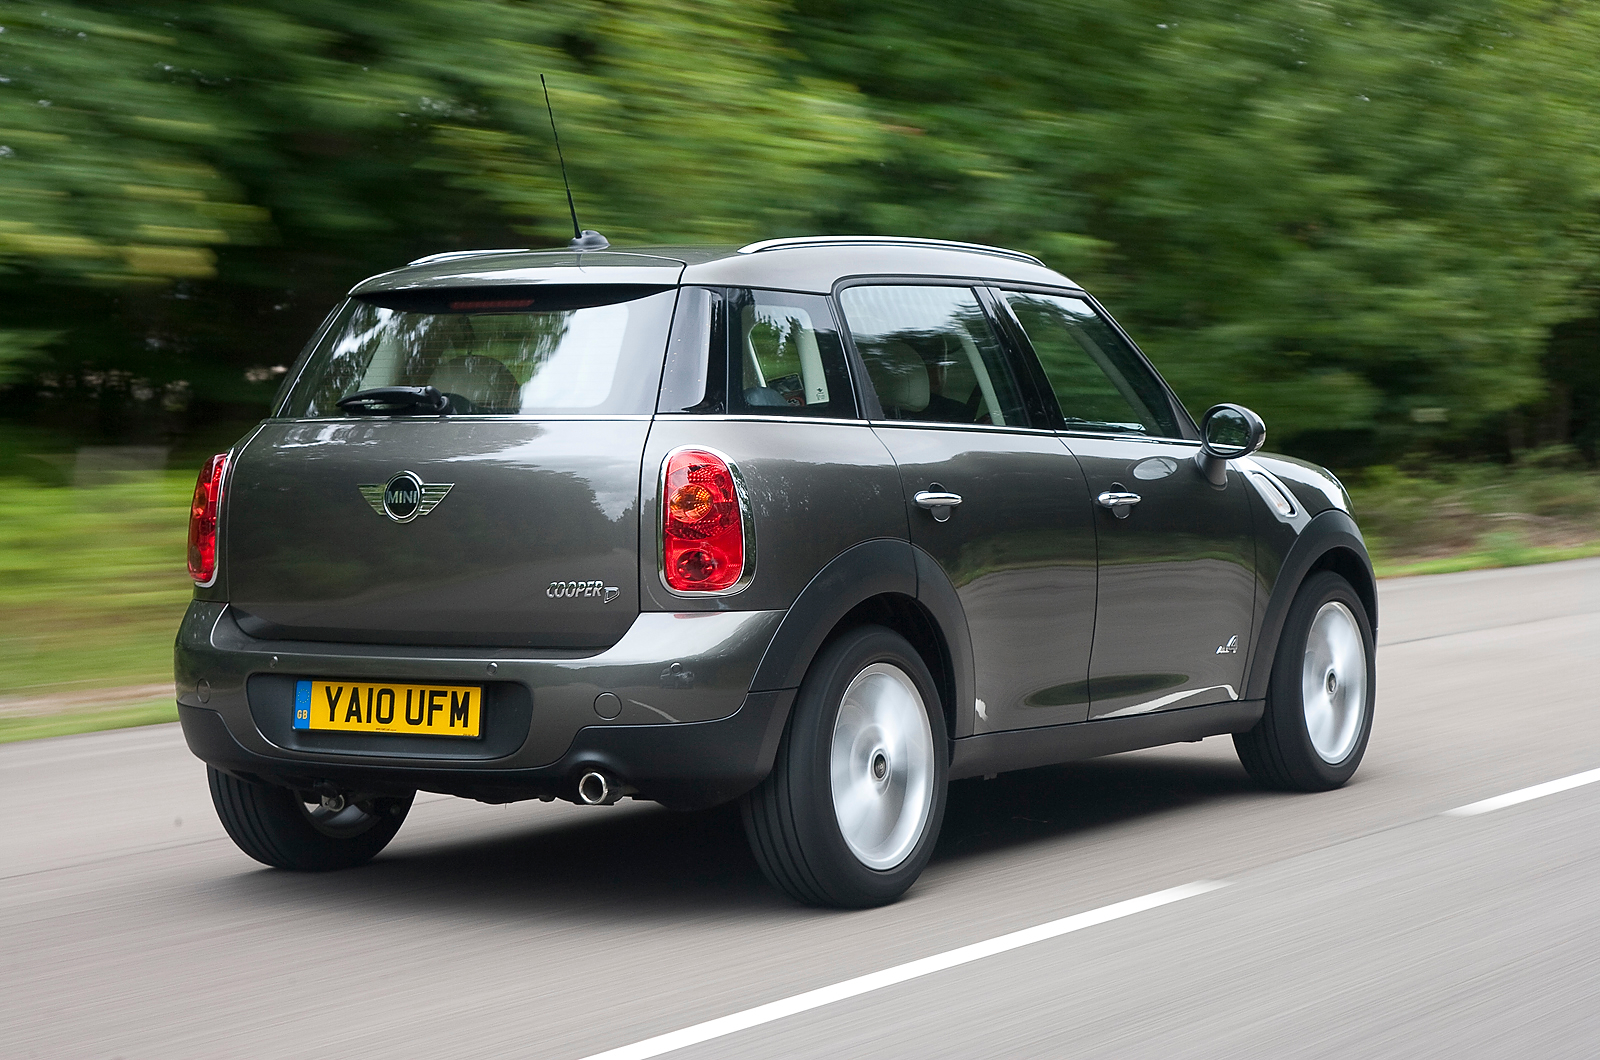 2015 mini cooper countryman quality review release date price and specs. Black Bedroom Furniture Sets. Home Design Ideas